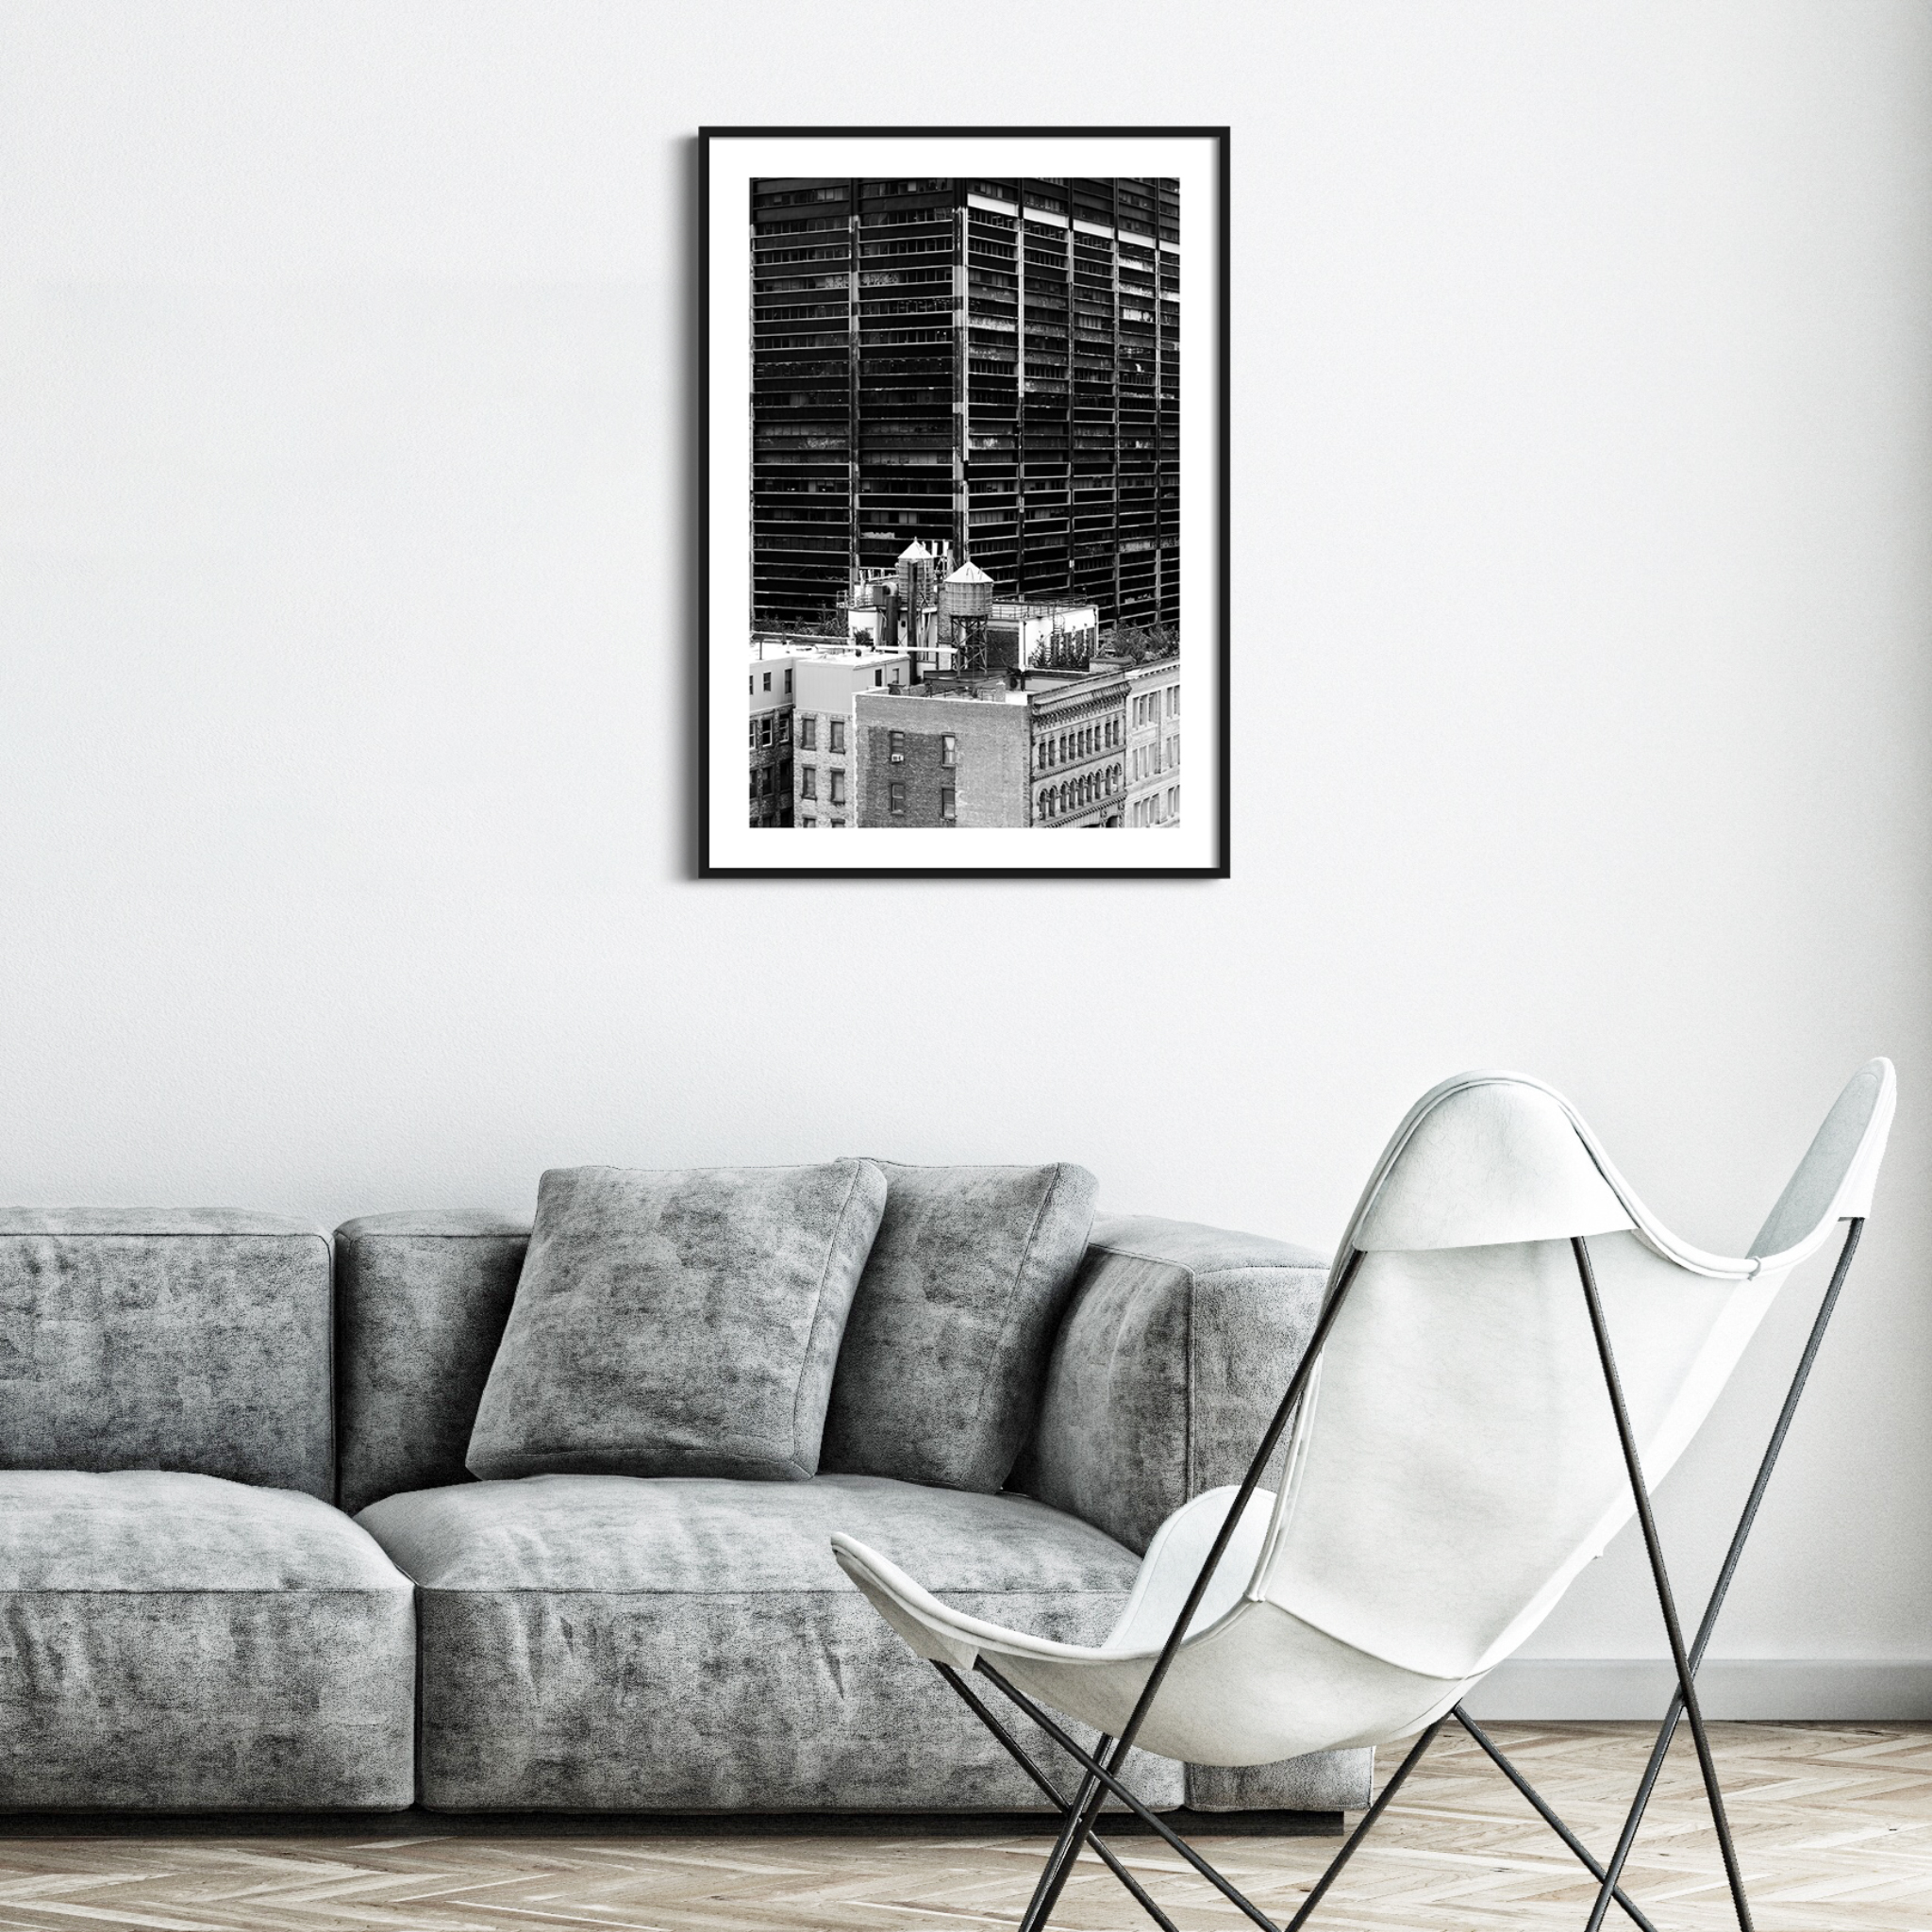 Manhattan Architecture Shot Number 36 - black and white print in white frame on the wall over the sofa